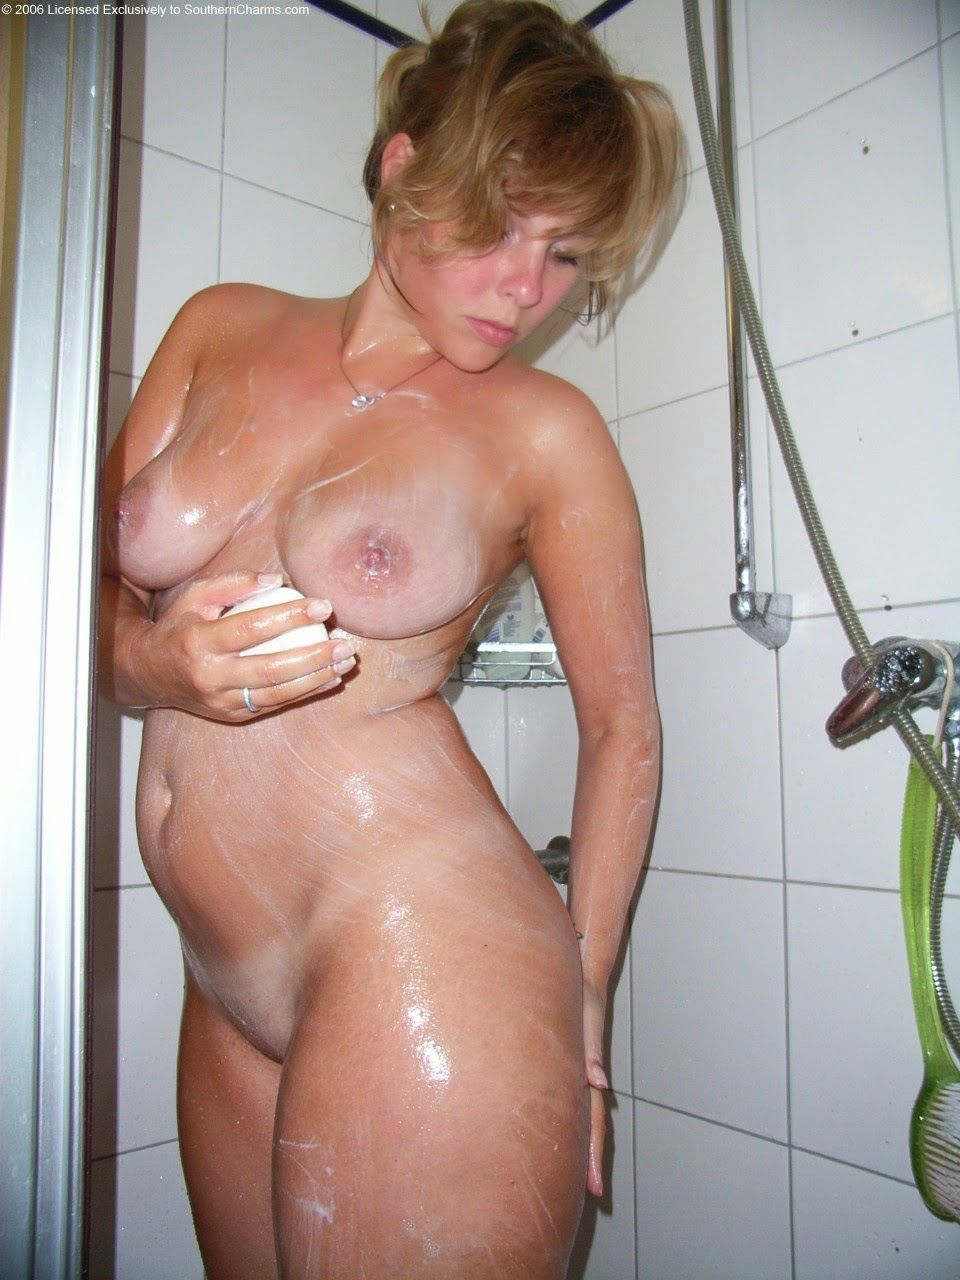 Milf natural naked mature women